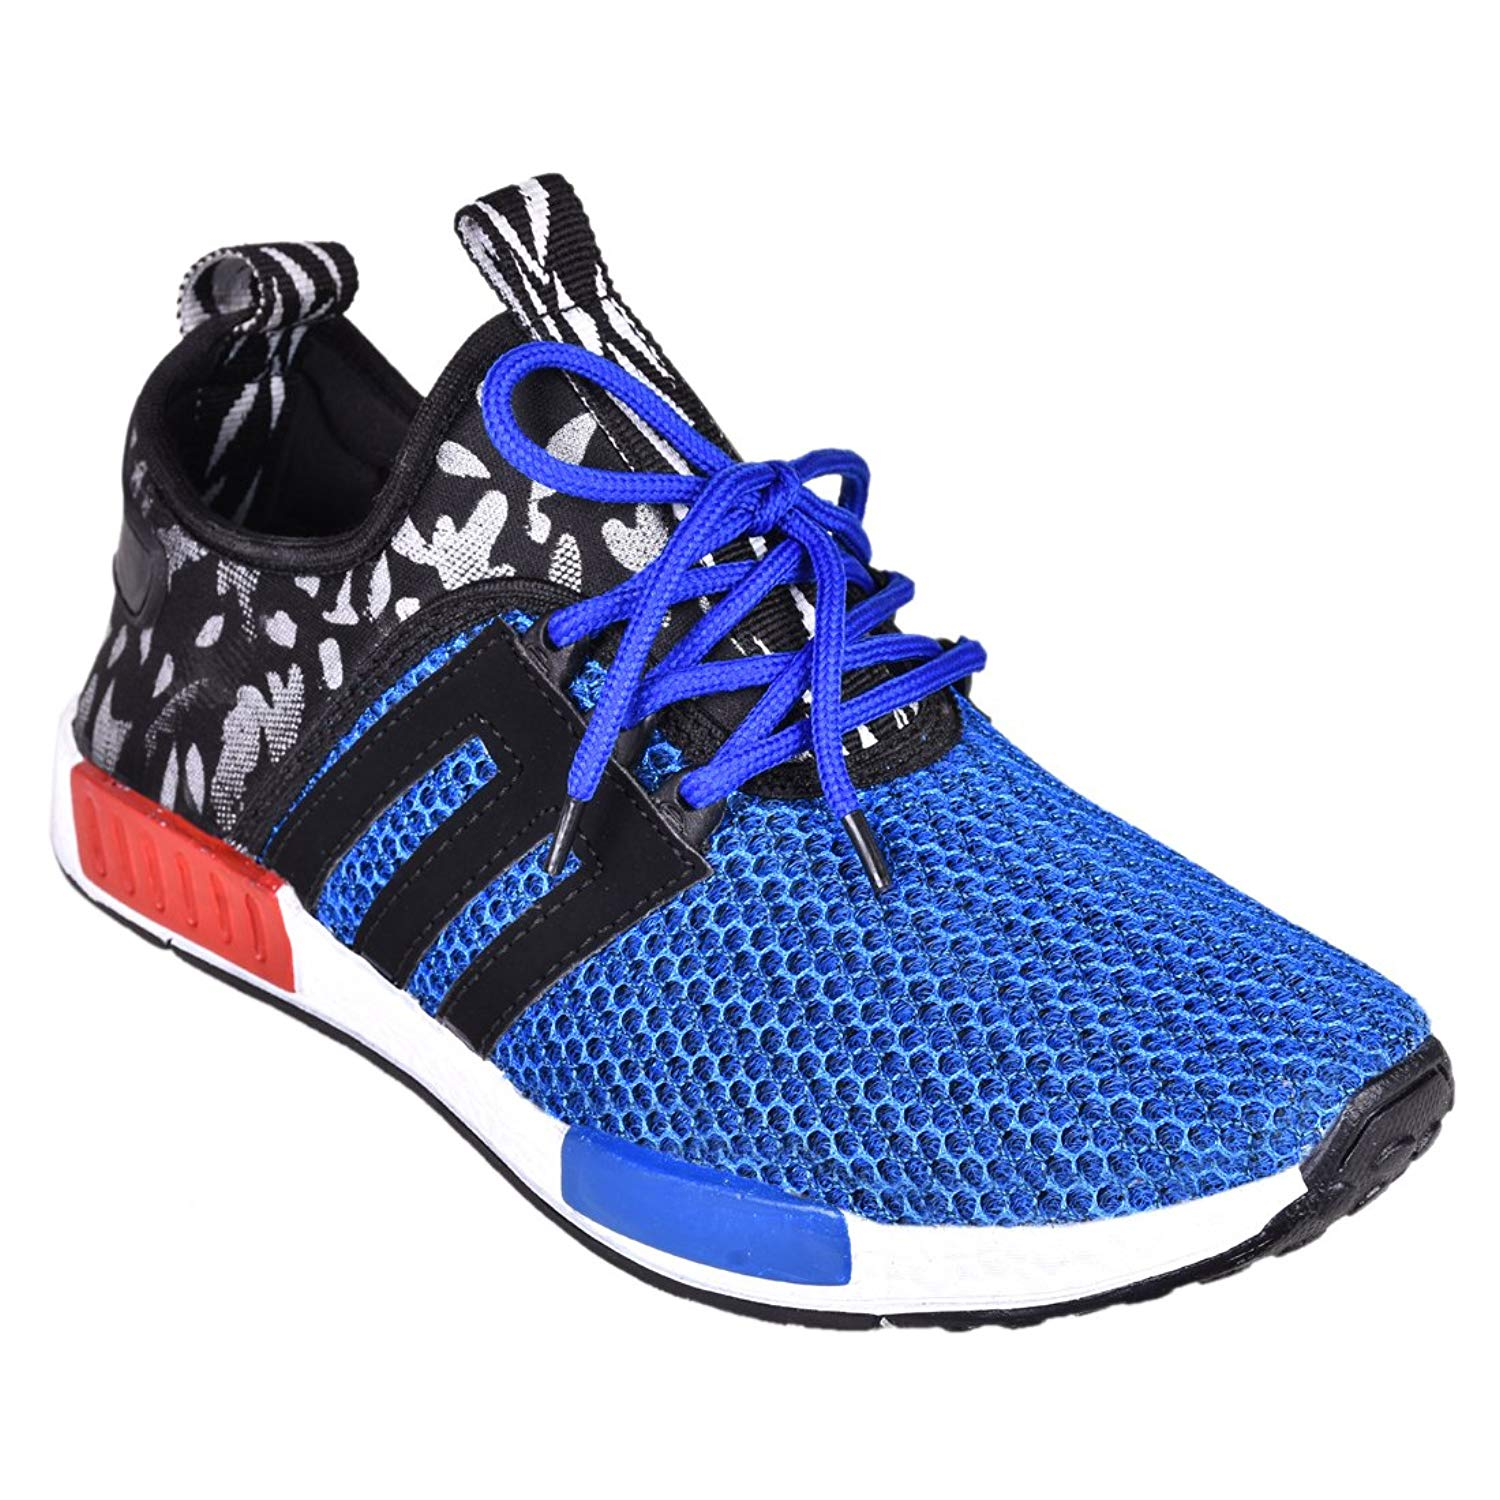 shoebook menu0027s blue sport shoes: buy online at low prices in india - DERSUEZ